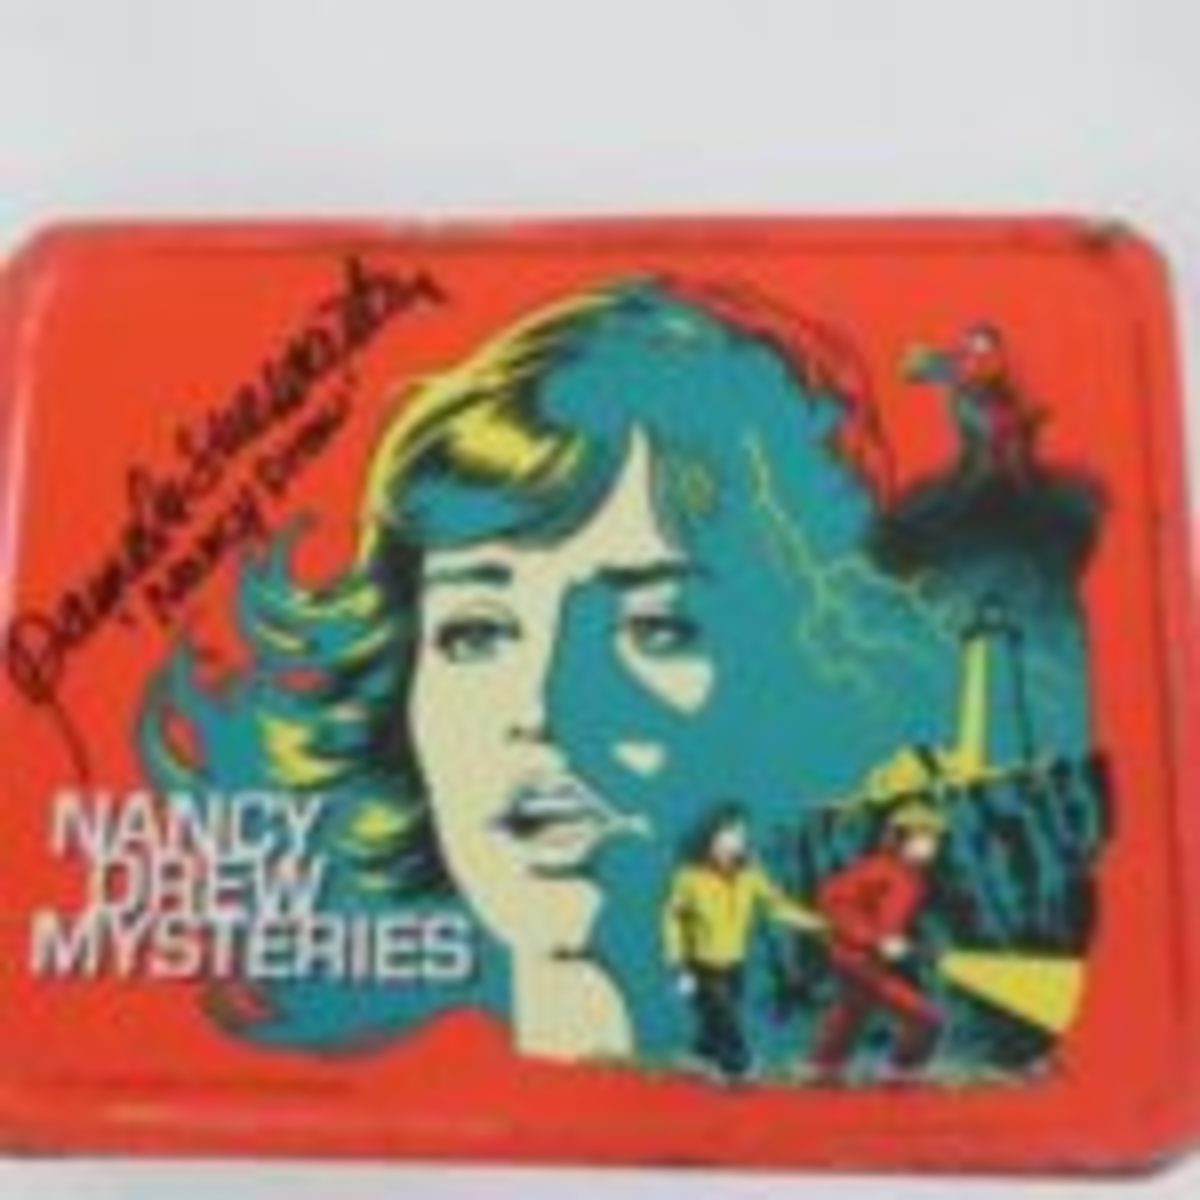 Nancy Drew lunchbox from 1970s TV show - signed by actress Pamela Sue Martin, who played Nancy in the series.